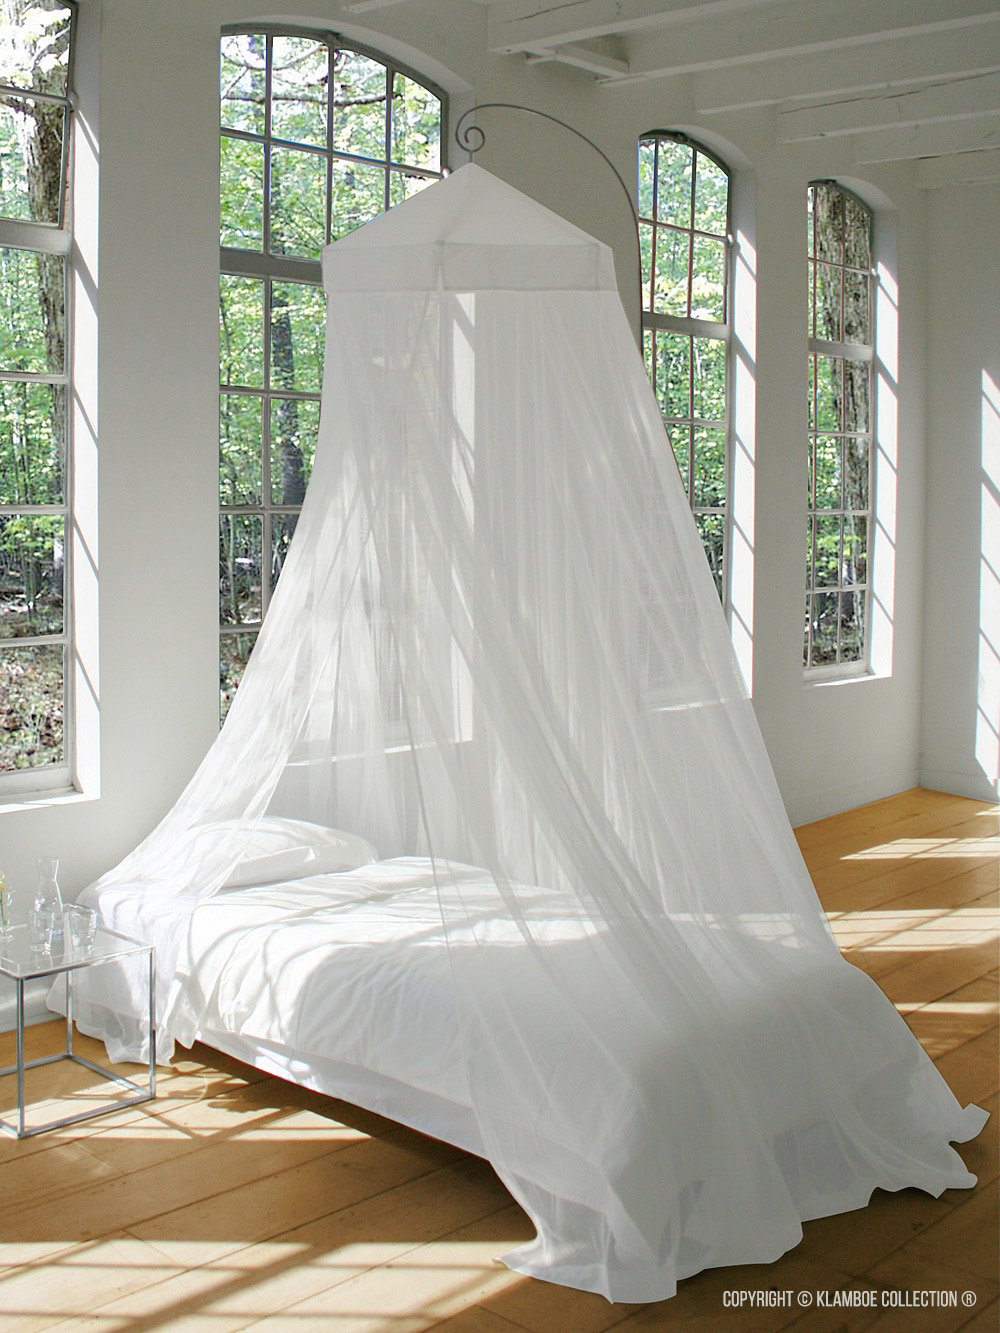 klamboe collection  u00ae   order your quality mosquito net in various sizes  colors and designs